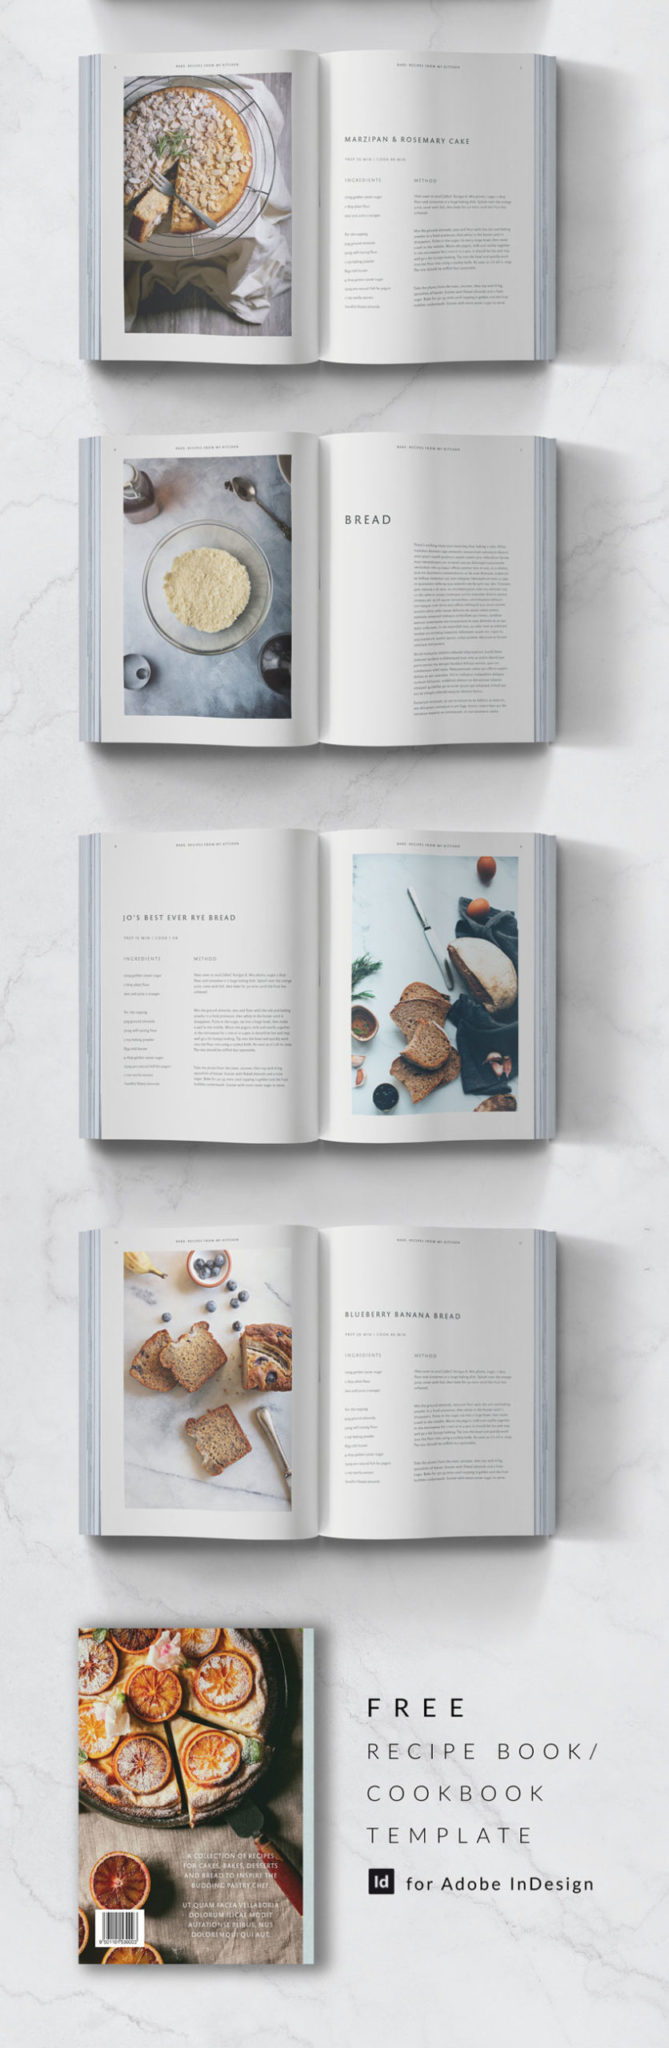 free indesign template free recipe book template free cookbook template free cookery book template for indesign